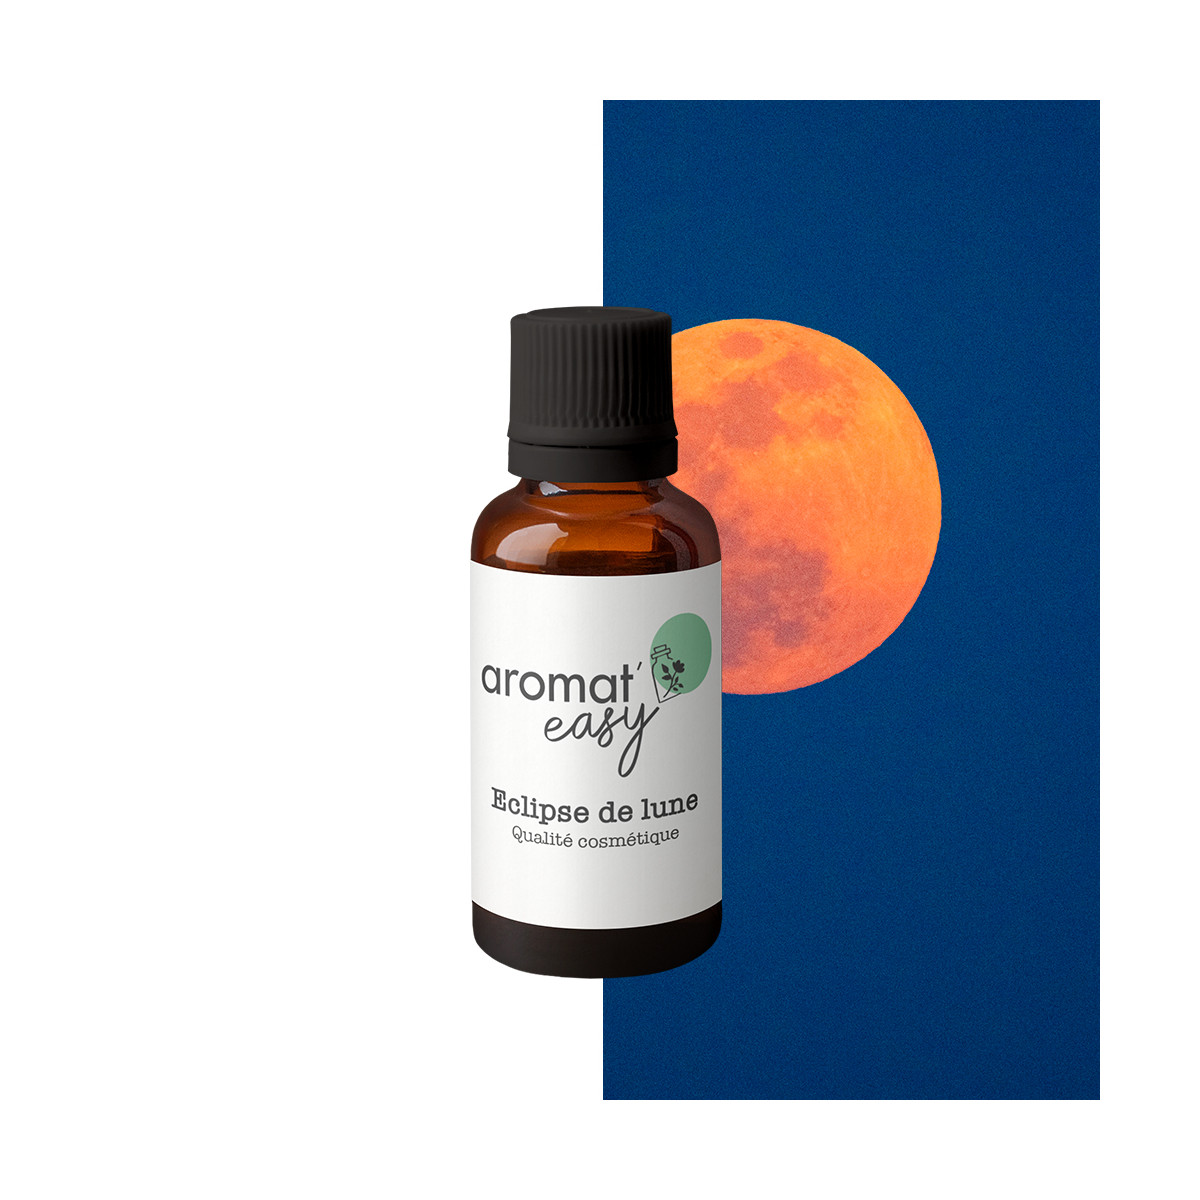 Fragrance Eclipse de lune